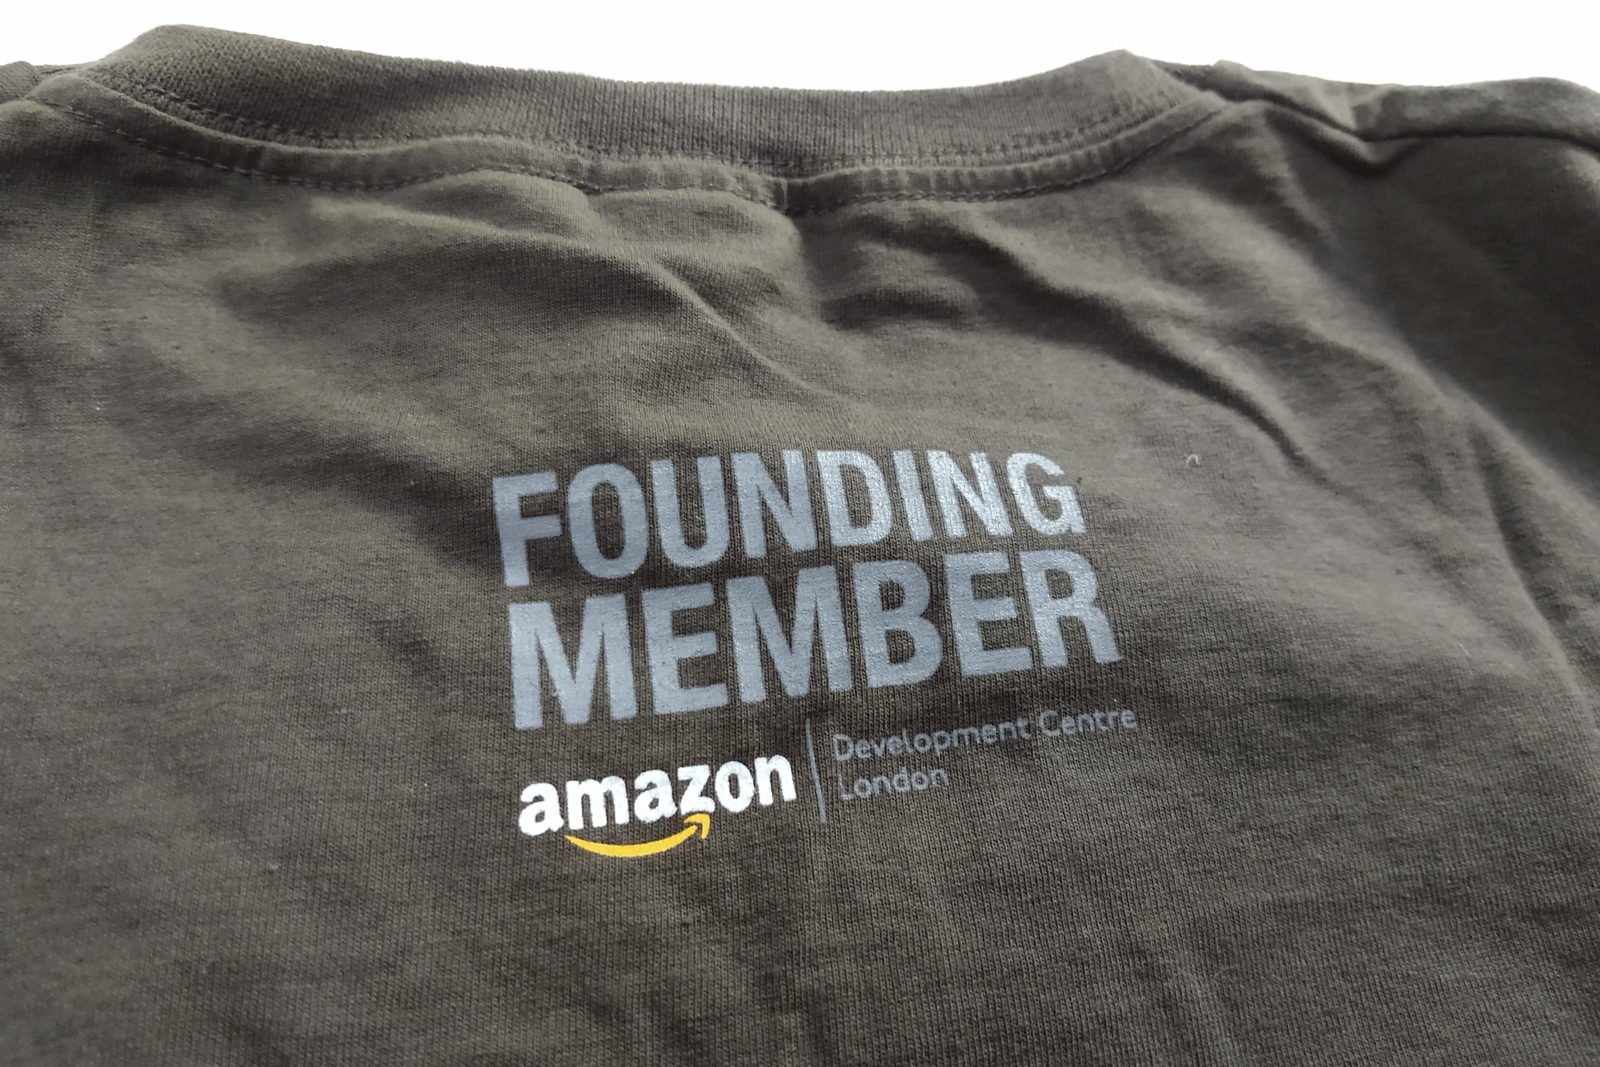 Back of t-shirt saying Amazon Develoment Centre London Founding Member